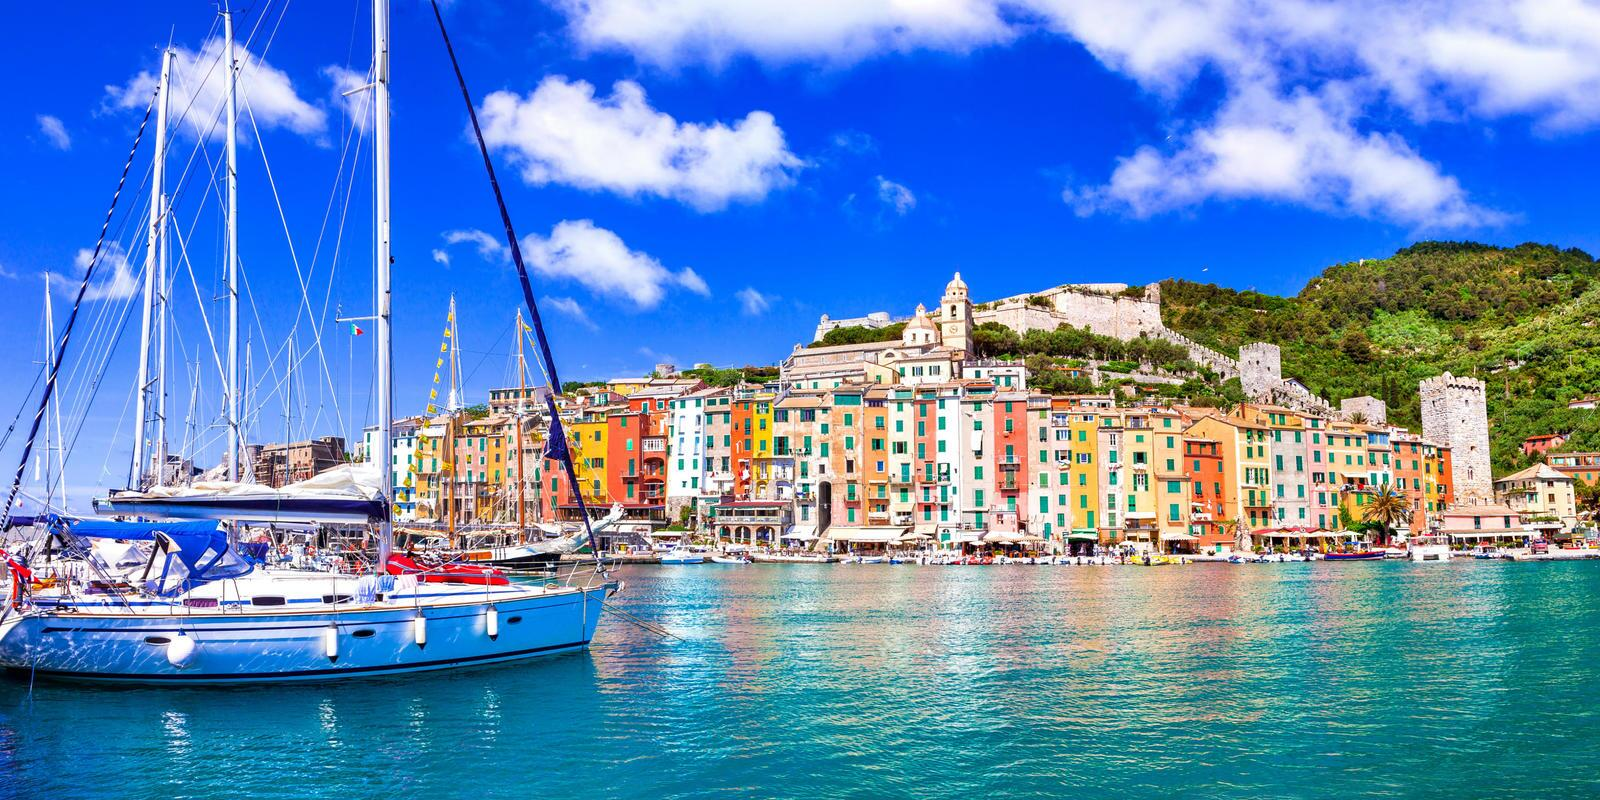 Weekend of relaxation between Portovenere and the Cinque Terre